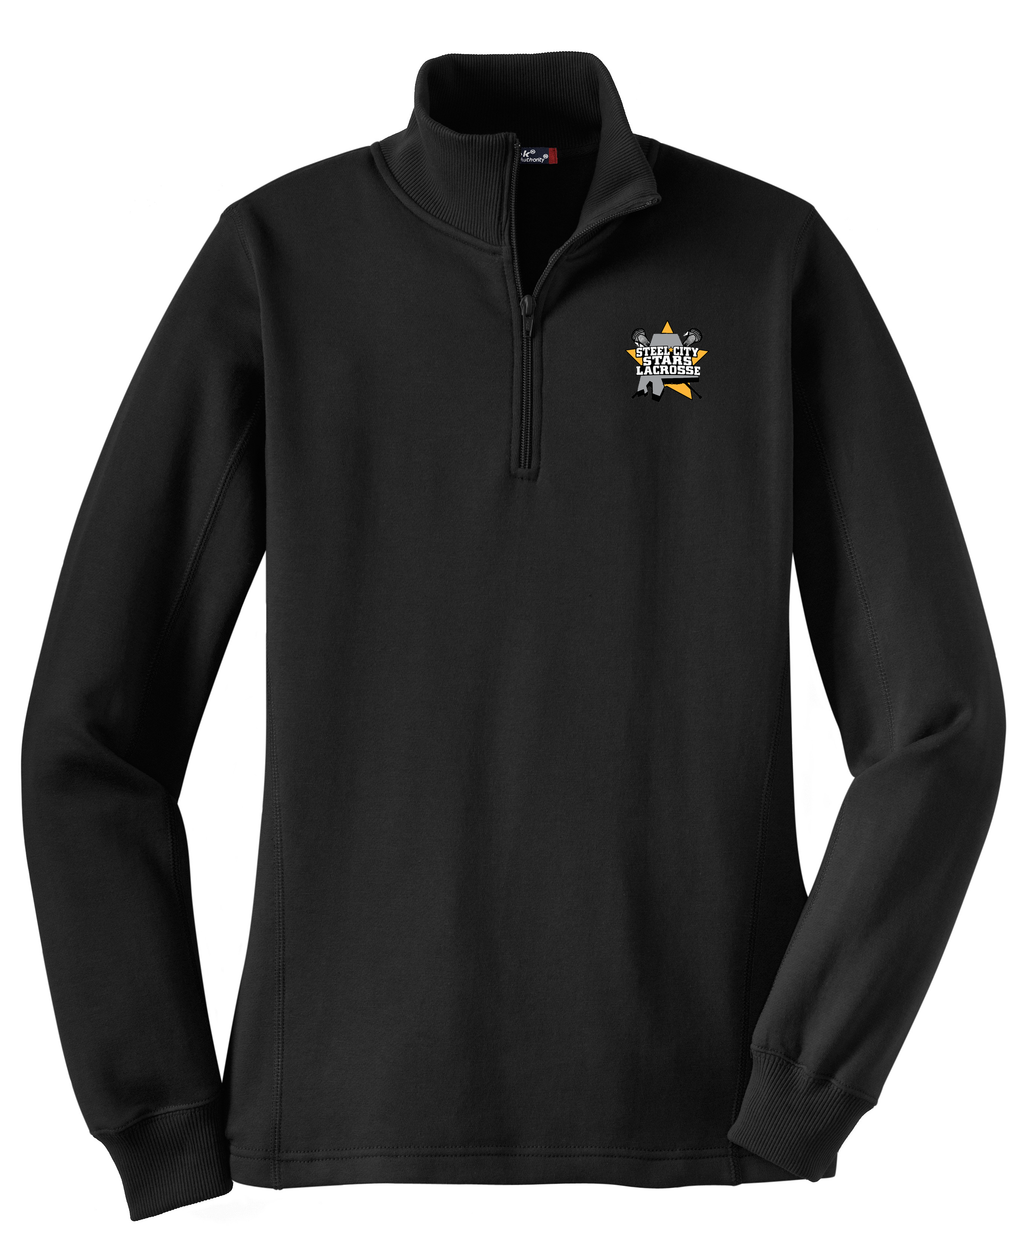 Stars Lacrosse Women's 1/4 Zip Fleece